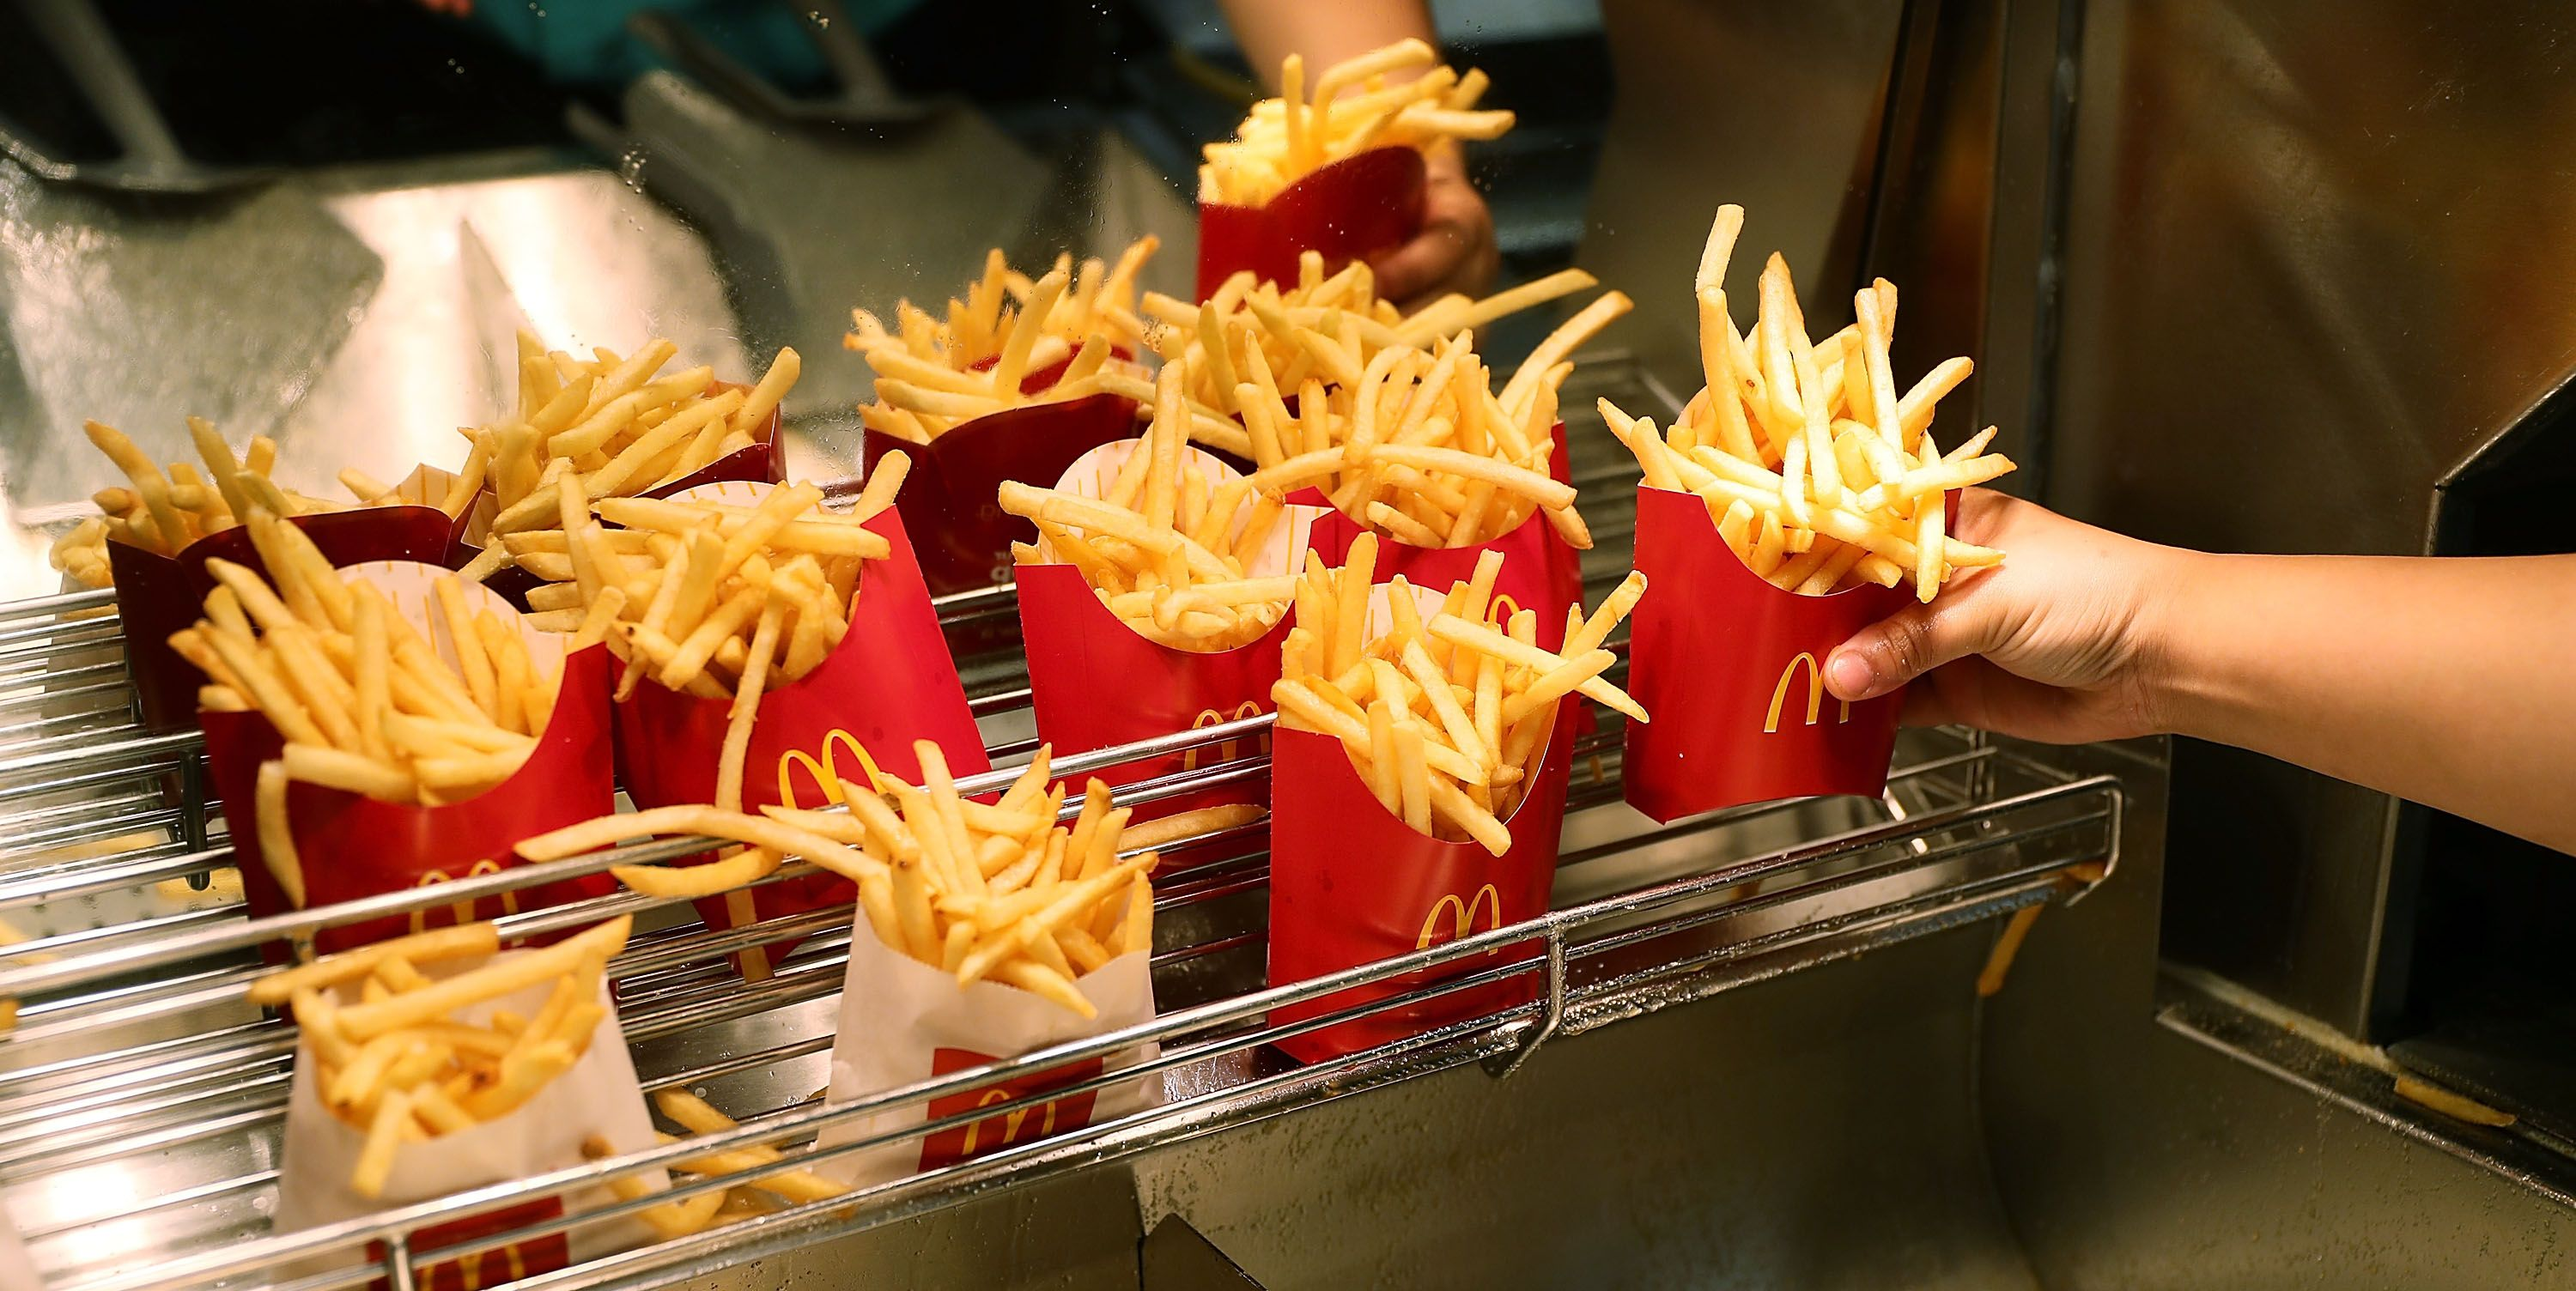 Why McDonald's changed their chips recipe